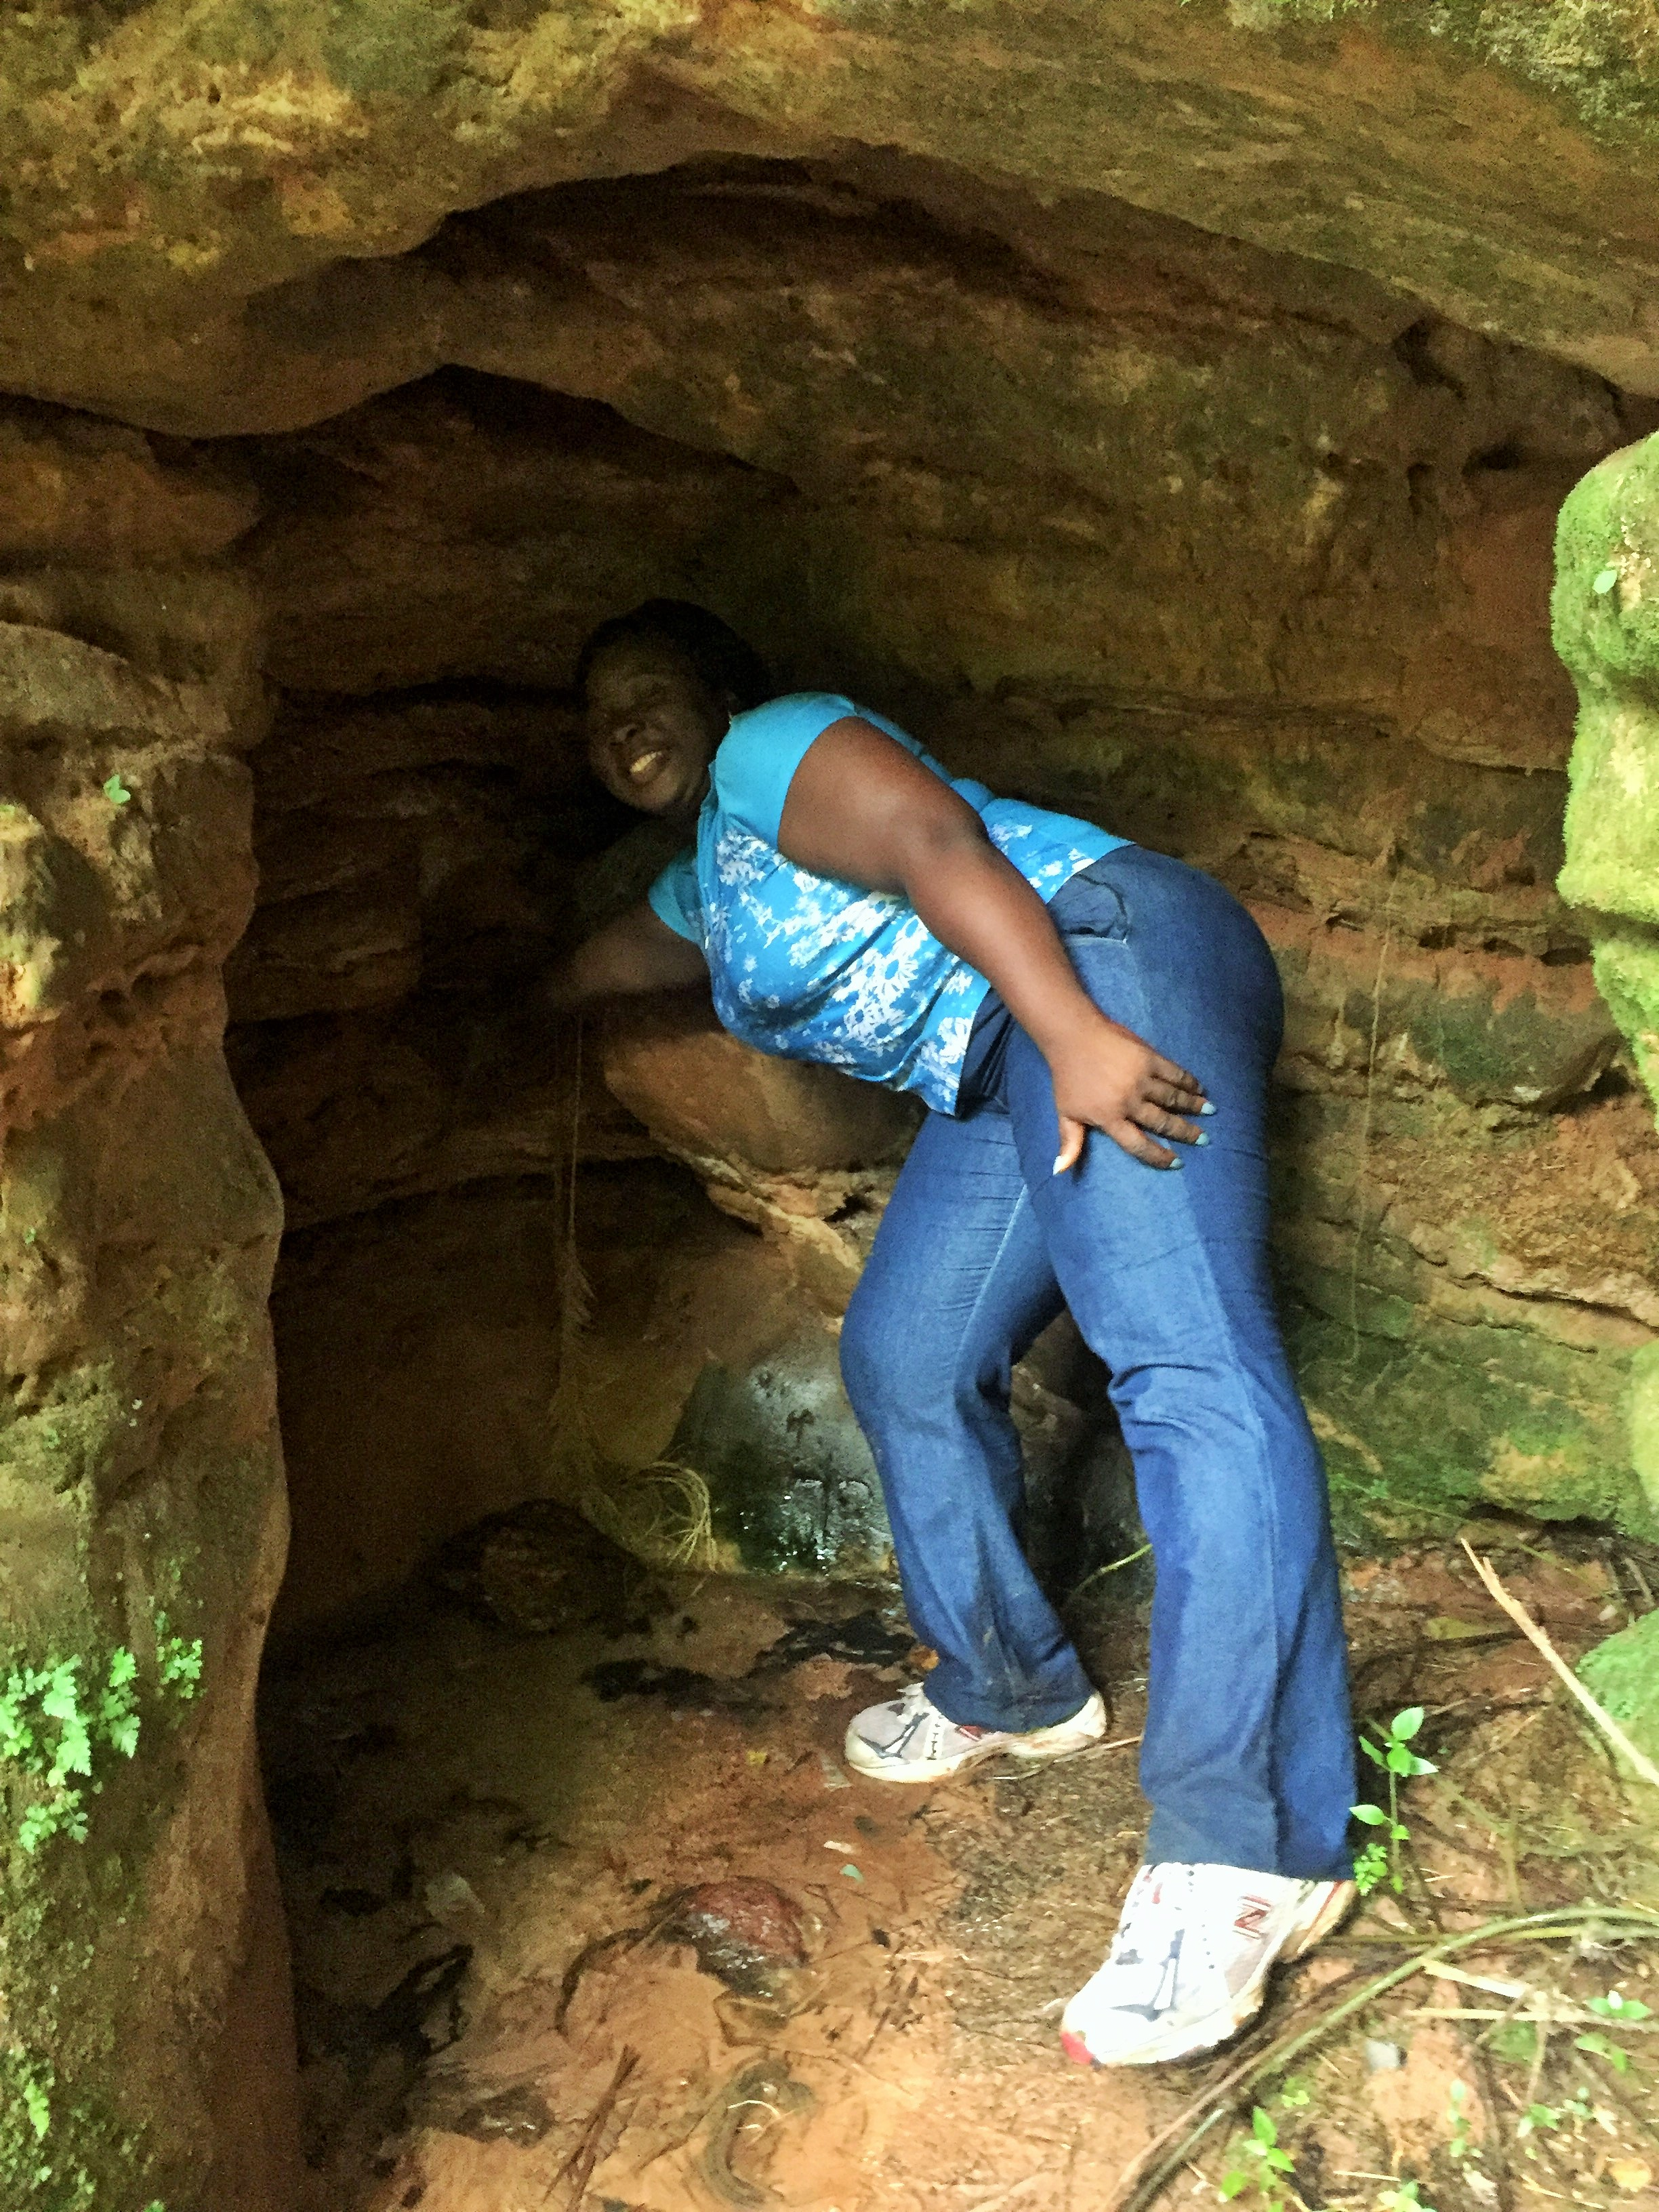 NGWO PINE FOREST | The lady told me a cave was in there and that I should go in. Mbanu! but let me take a picture